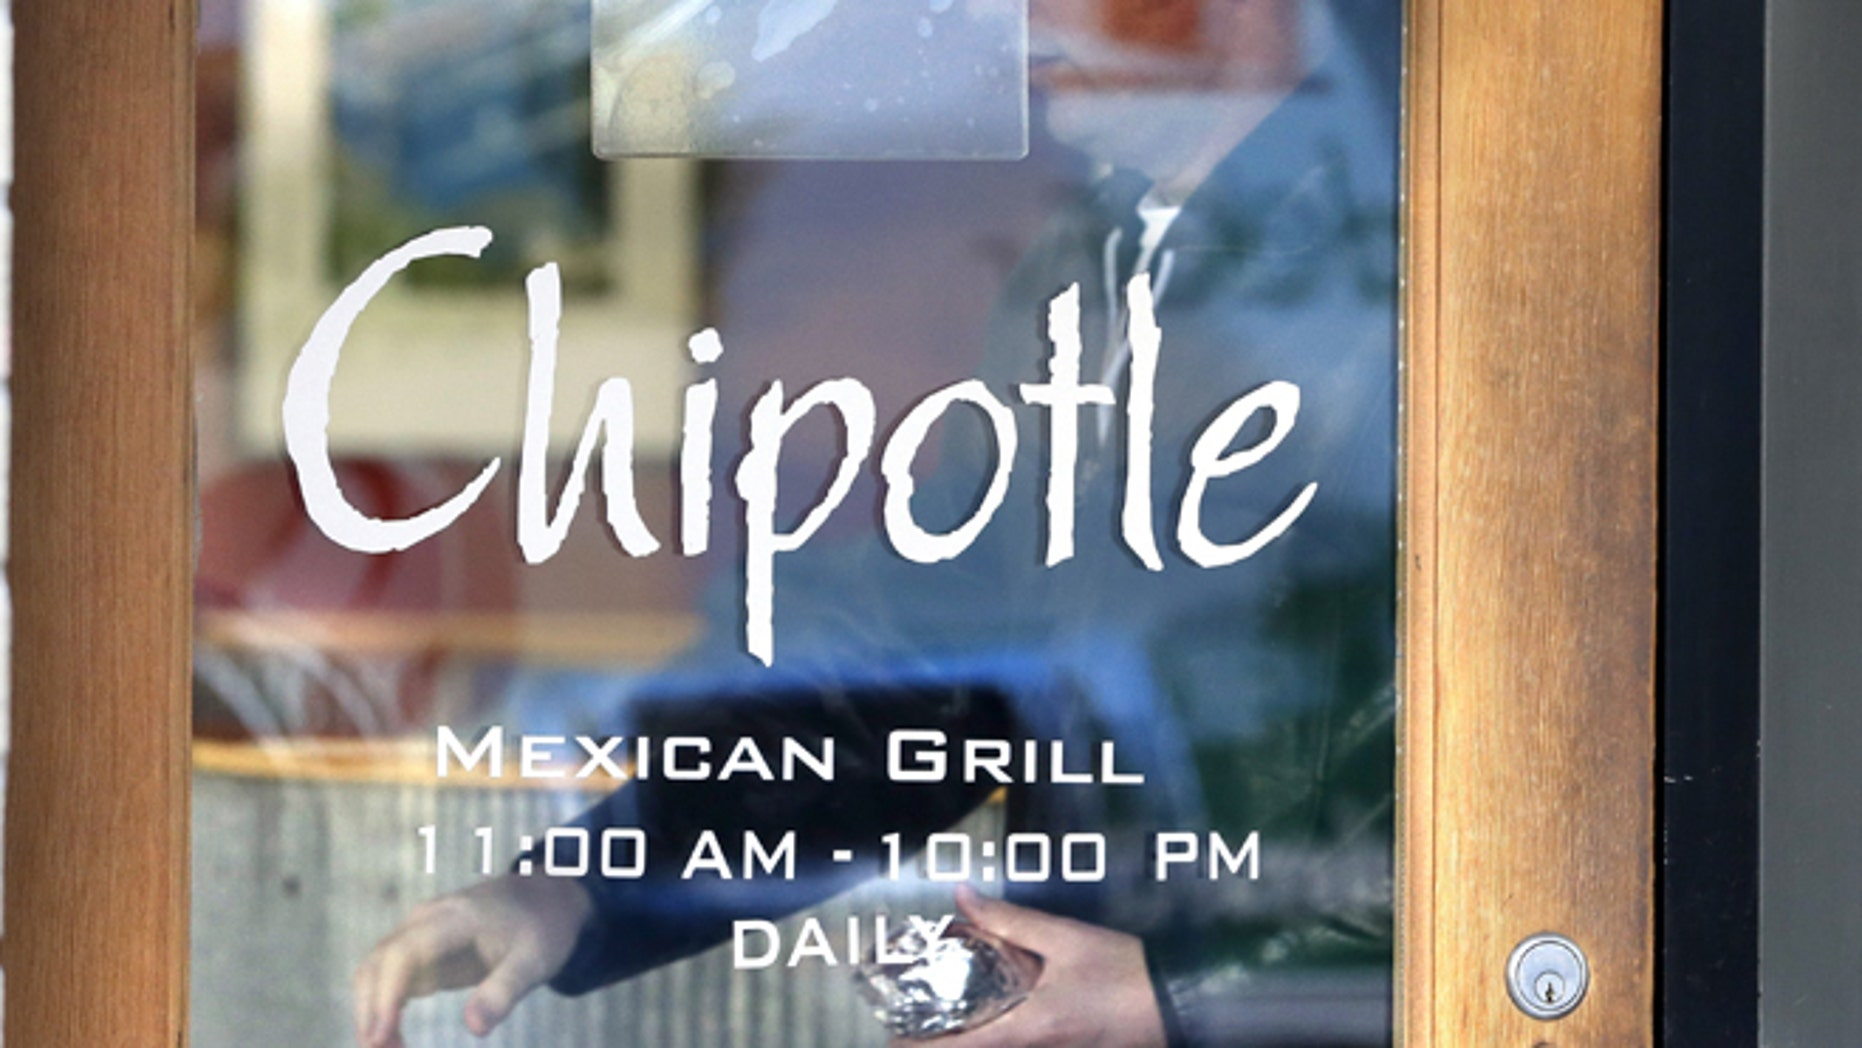 Chipotle Manager Fired After Viral Video May Get Her Job Back